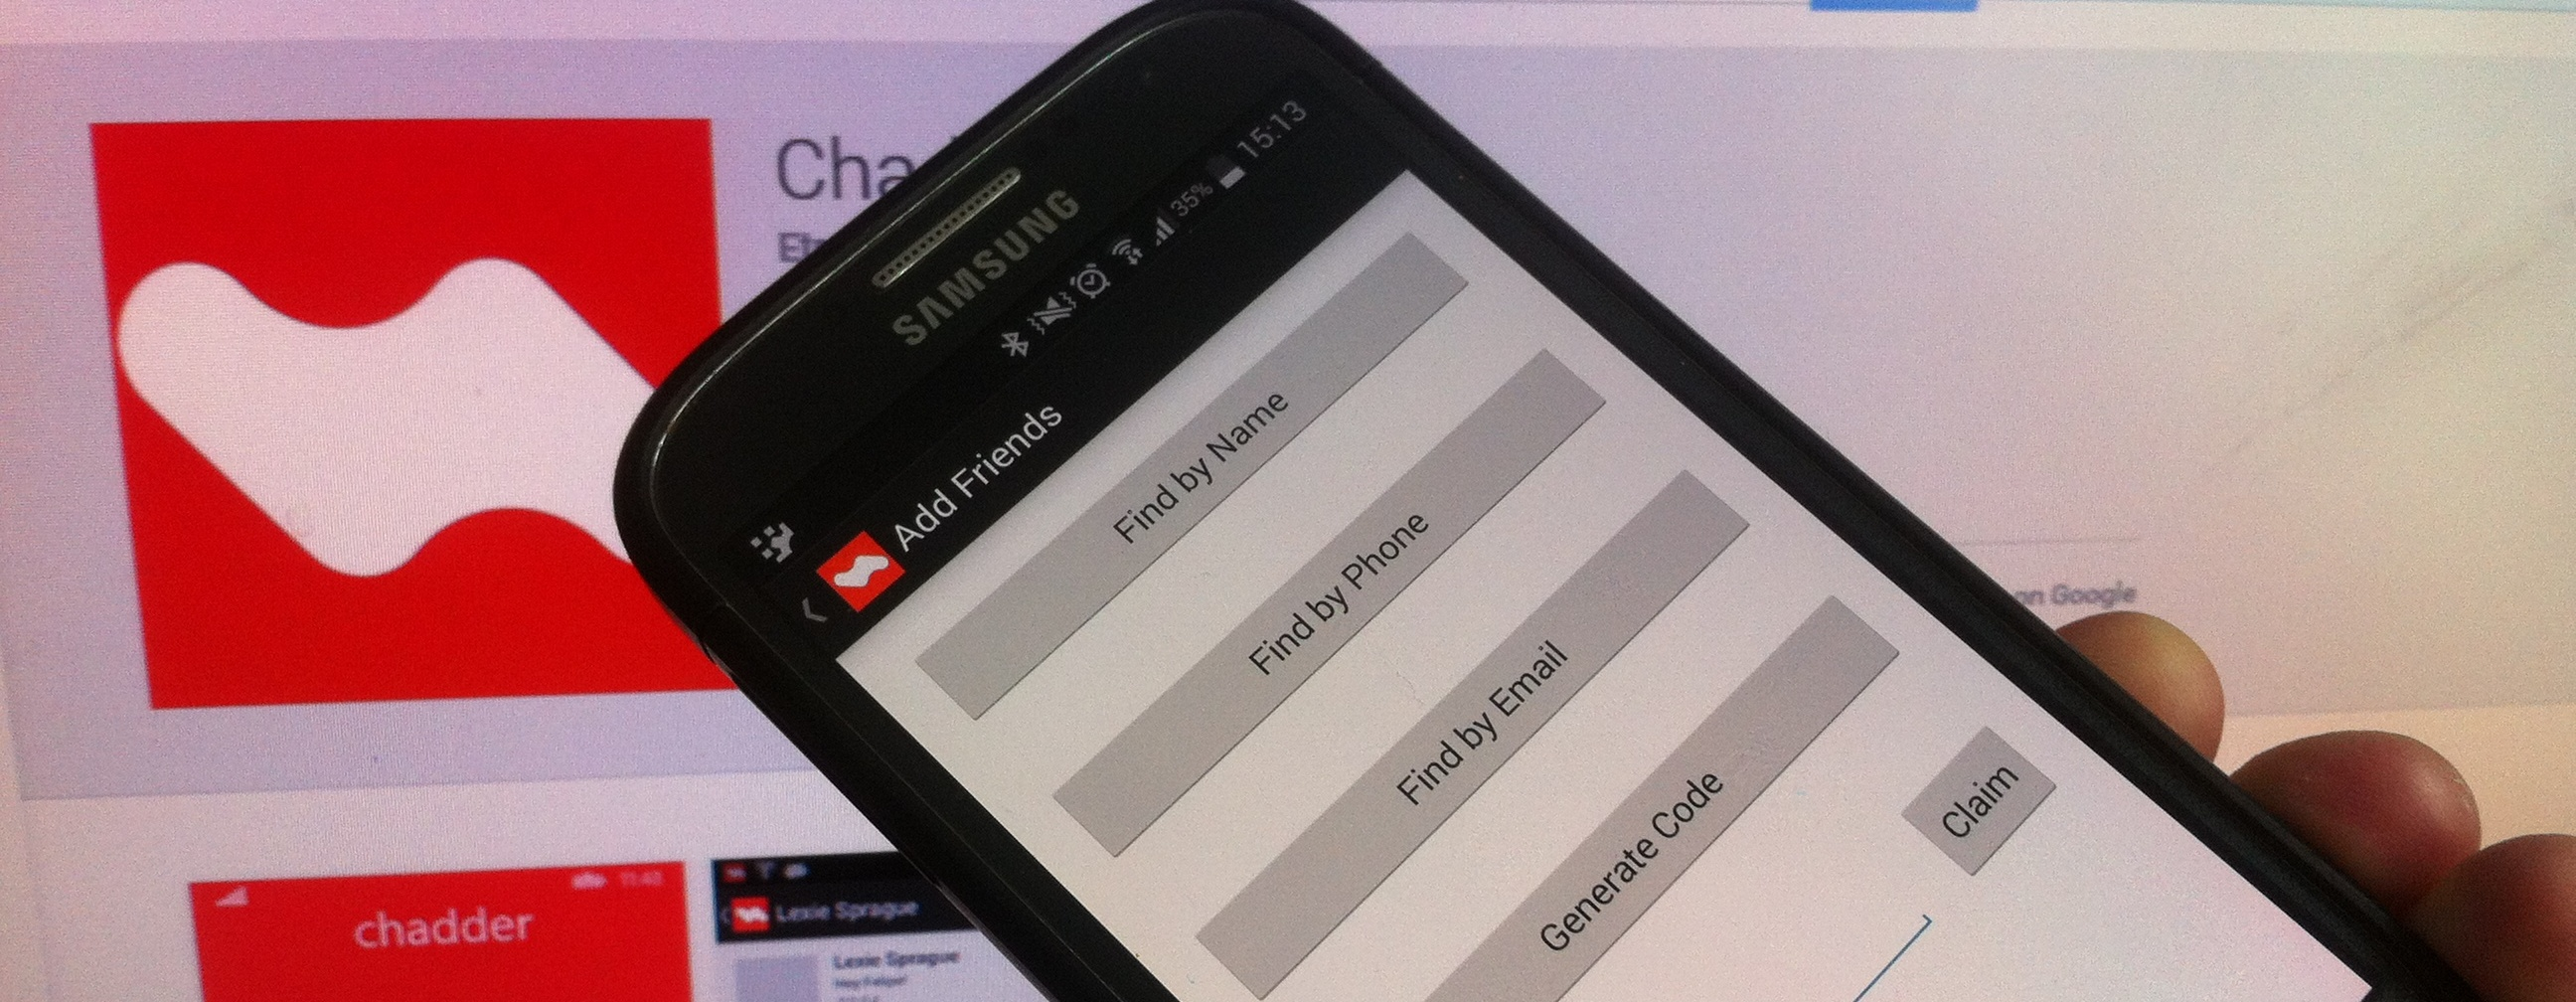 John McAfee launches Chadder, a new encrypted private messaging app